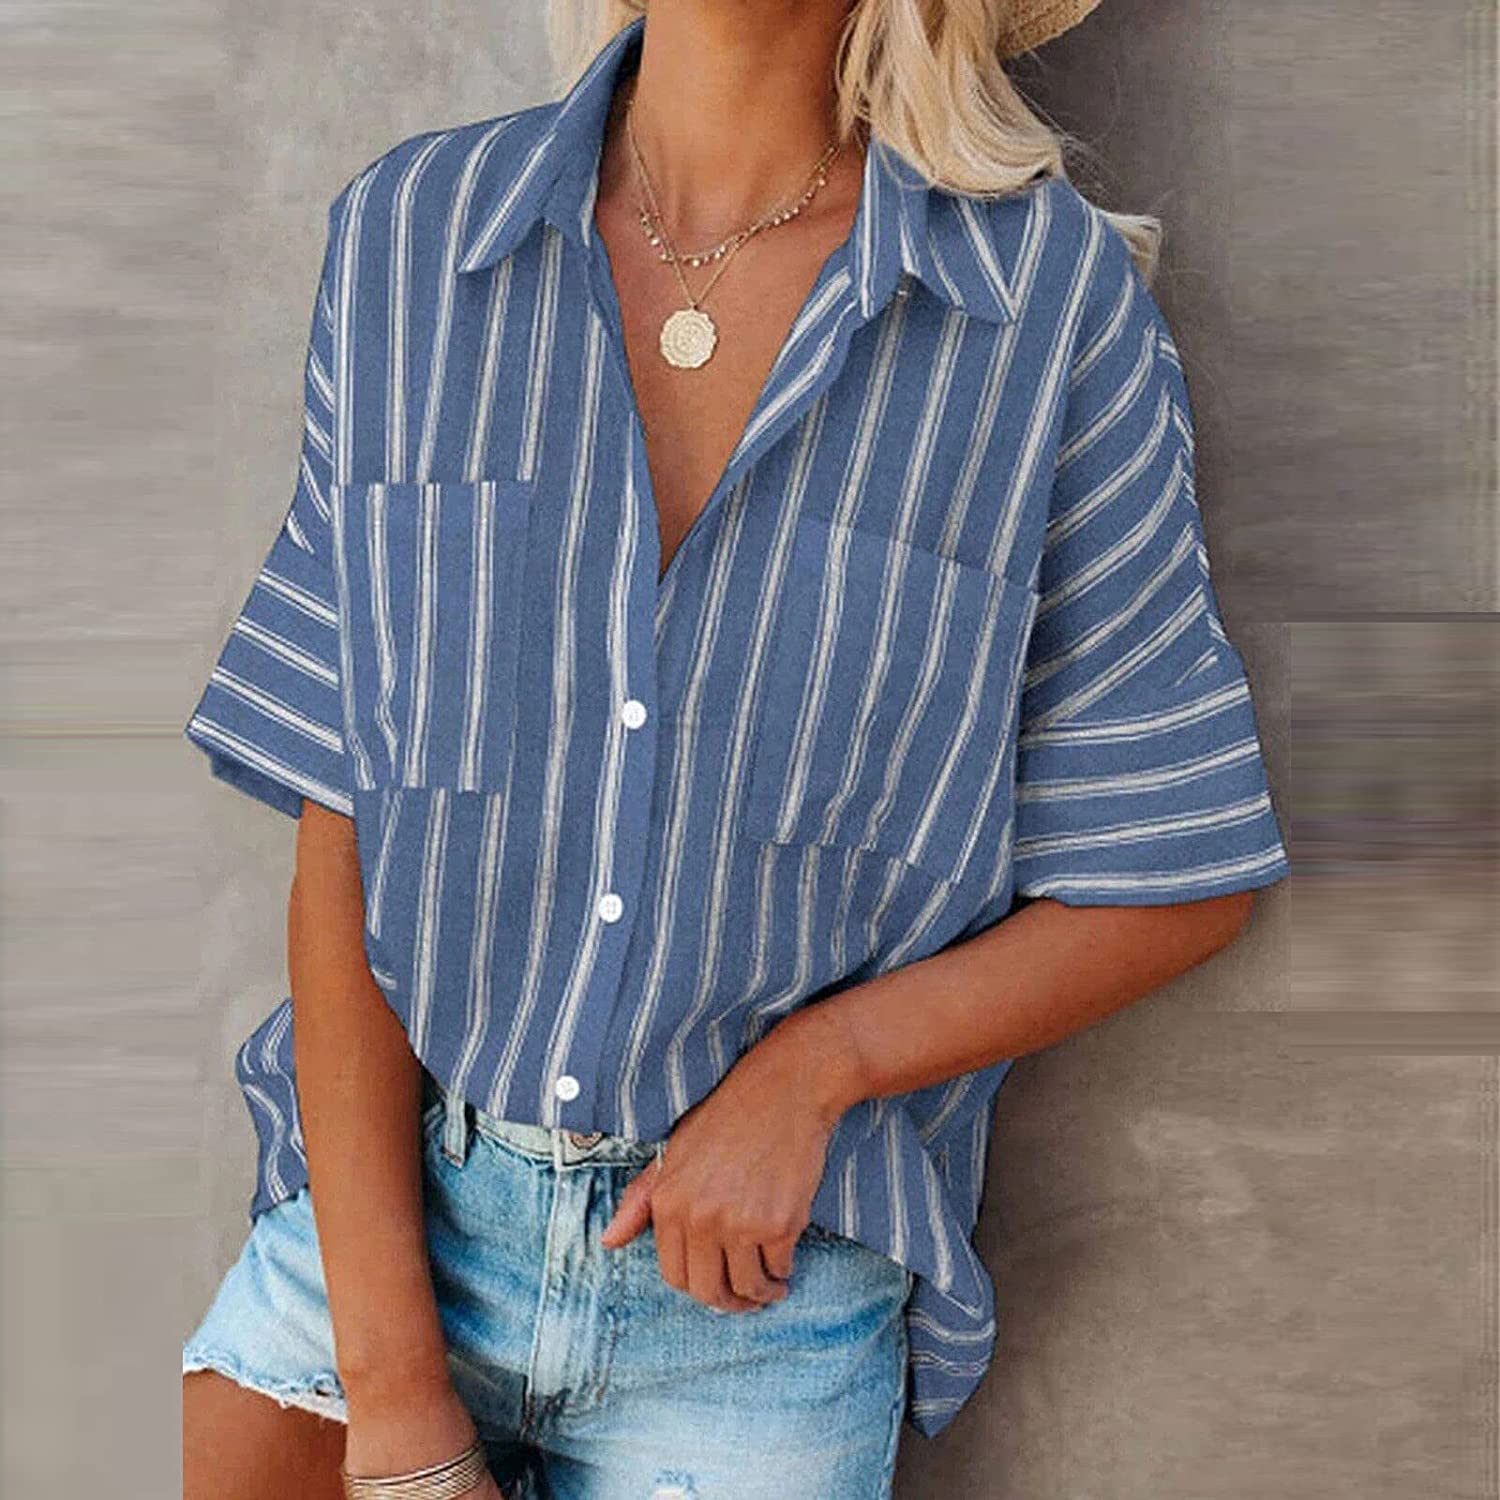 Casual Loose Fit Pocket Shirts for Women Comfy Cute Striped Button Down Tunic Tops Blouse